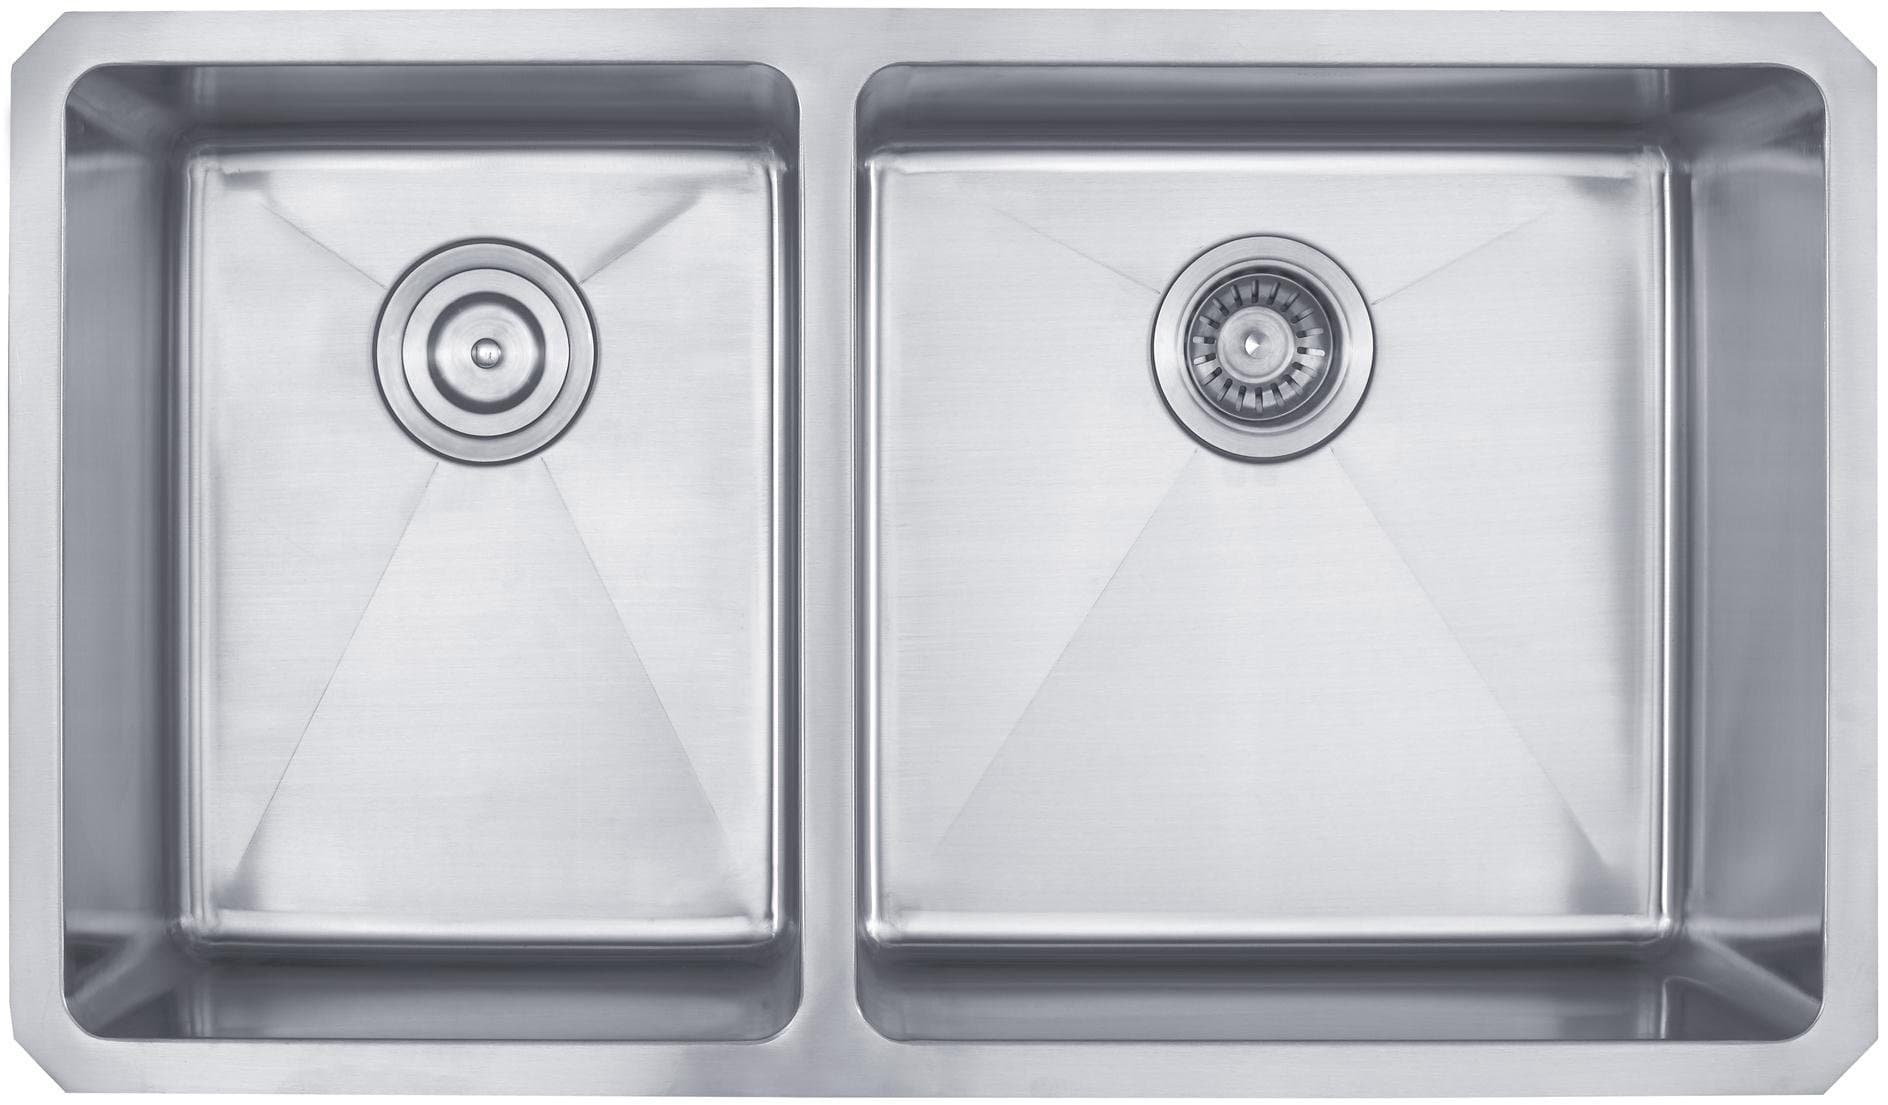 Kraus KHU10433 33 Inch Undermount 40/60 Double Bowl Kitchen Sink With 16  Gauge Stainless Steel Construction, Scratch Resistant Finish, Stainless  Steel ...